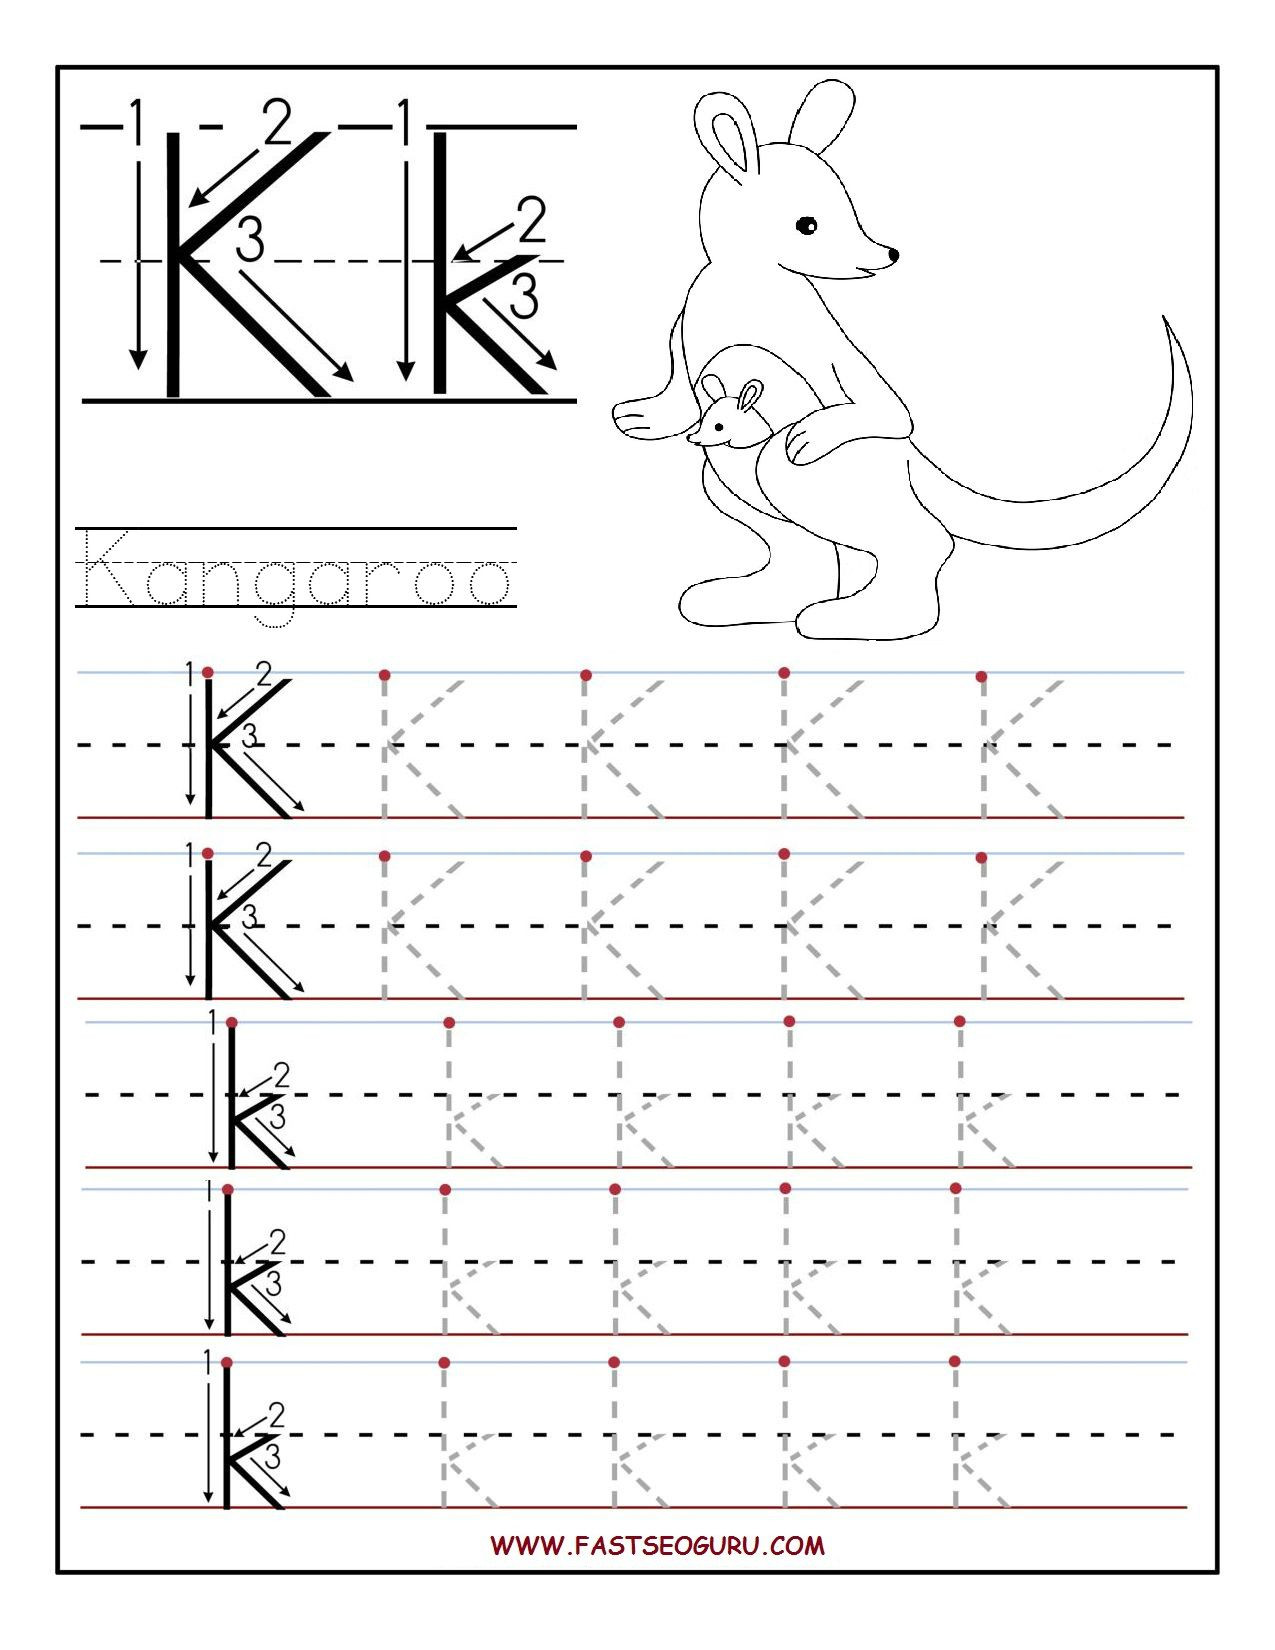 Letter K Tracing Worksheets Preschool Printable Letter K Tracing Worksheets for Preschool